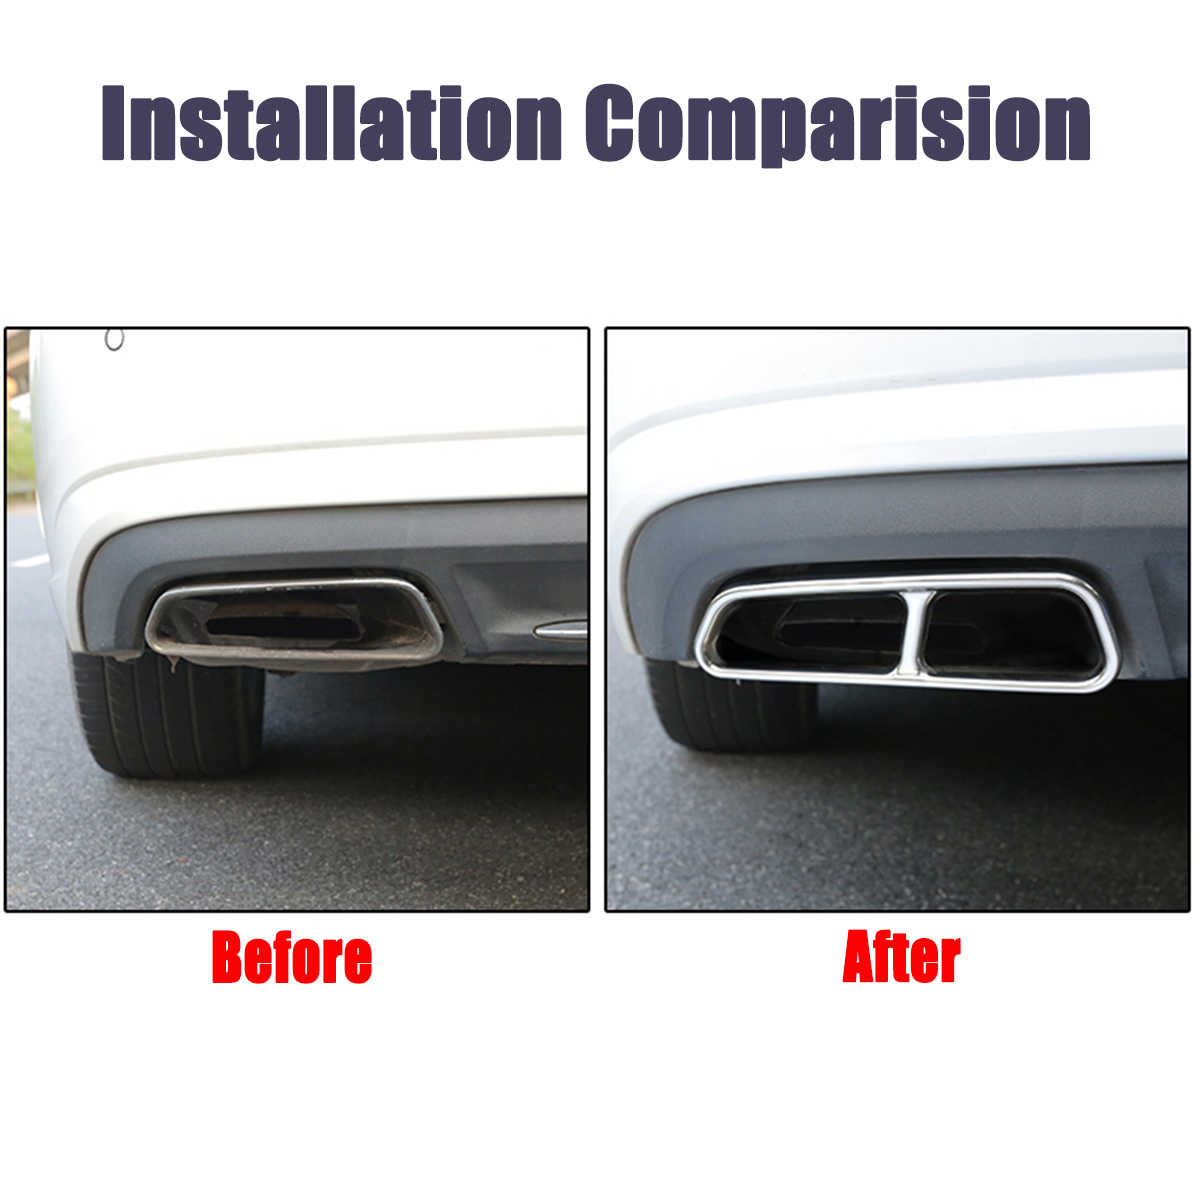 Rear Dual Exhaust Muffler Tail Decor End Pipe Tip Cover Trim For Audi A6 C7  2012 2013 2014 2015 2016 2017 2018 Only Decoration